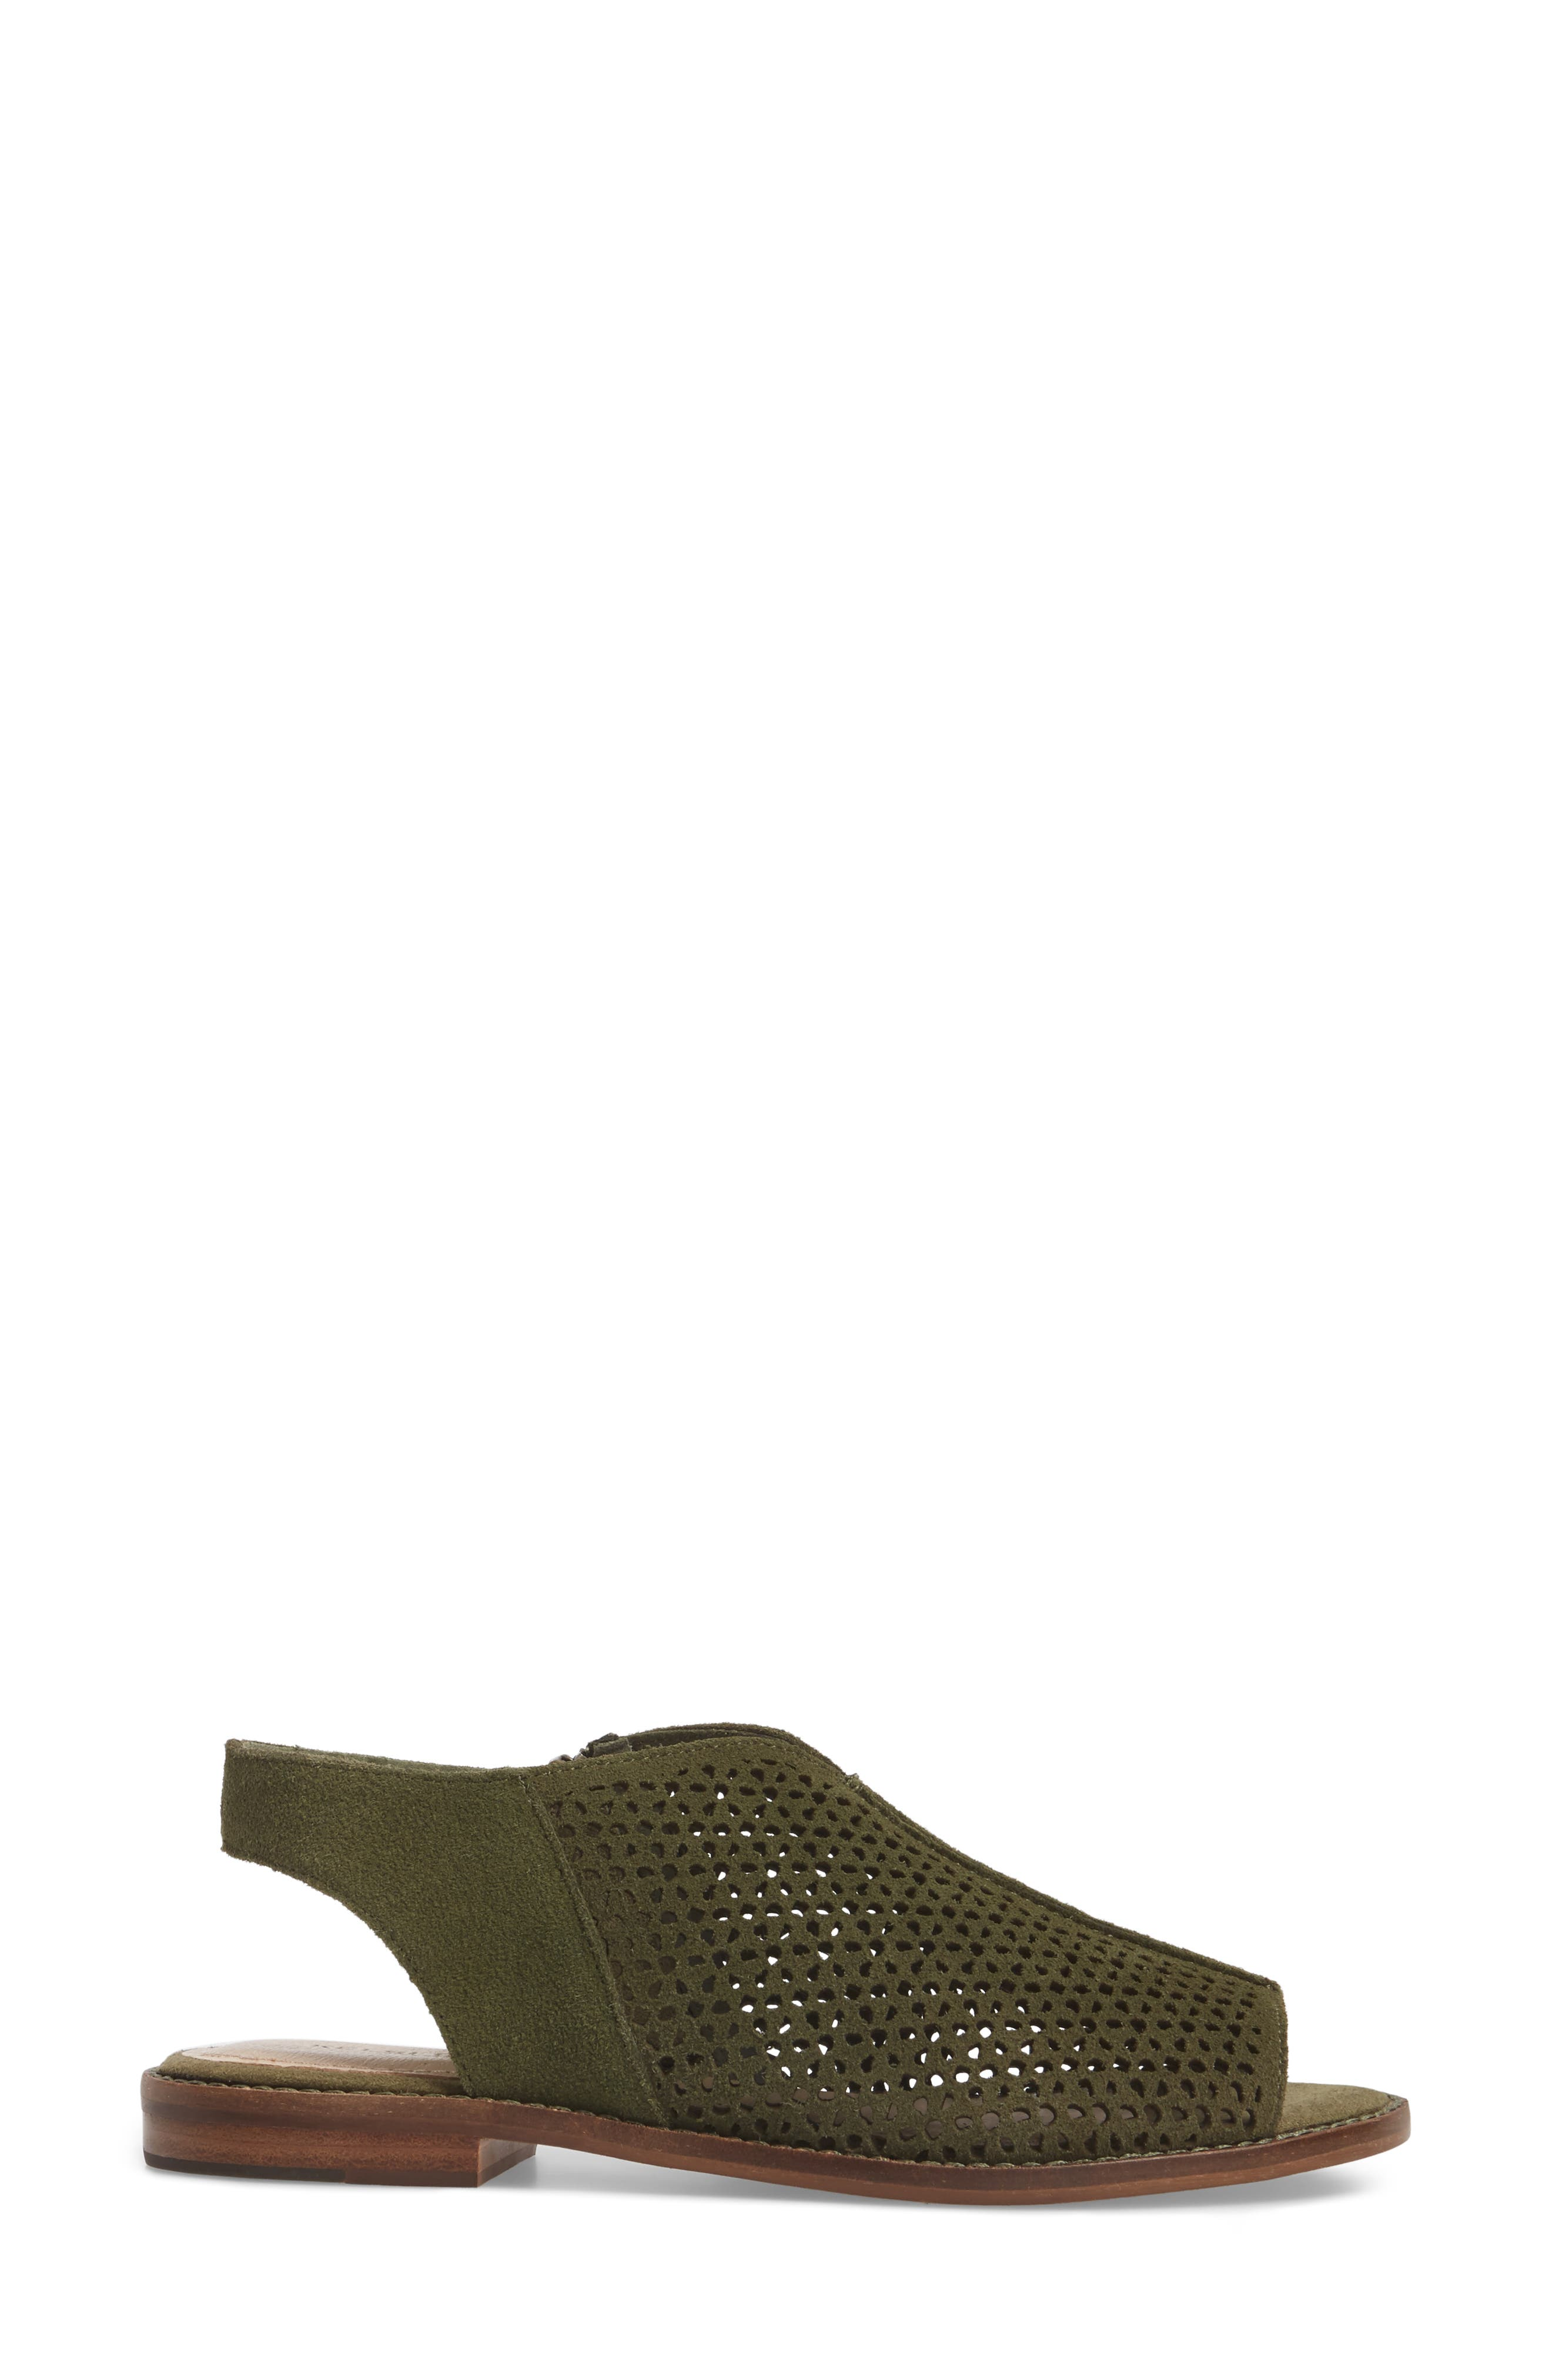 Seneca Perforated Sandal,                             Alternate thumbnail 3, color,                             Olive